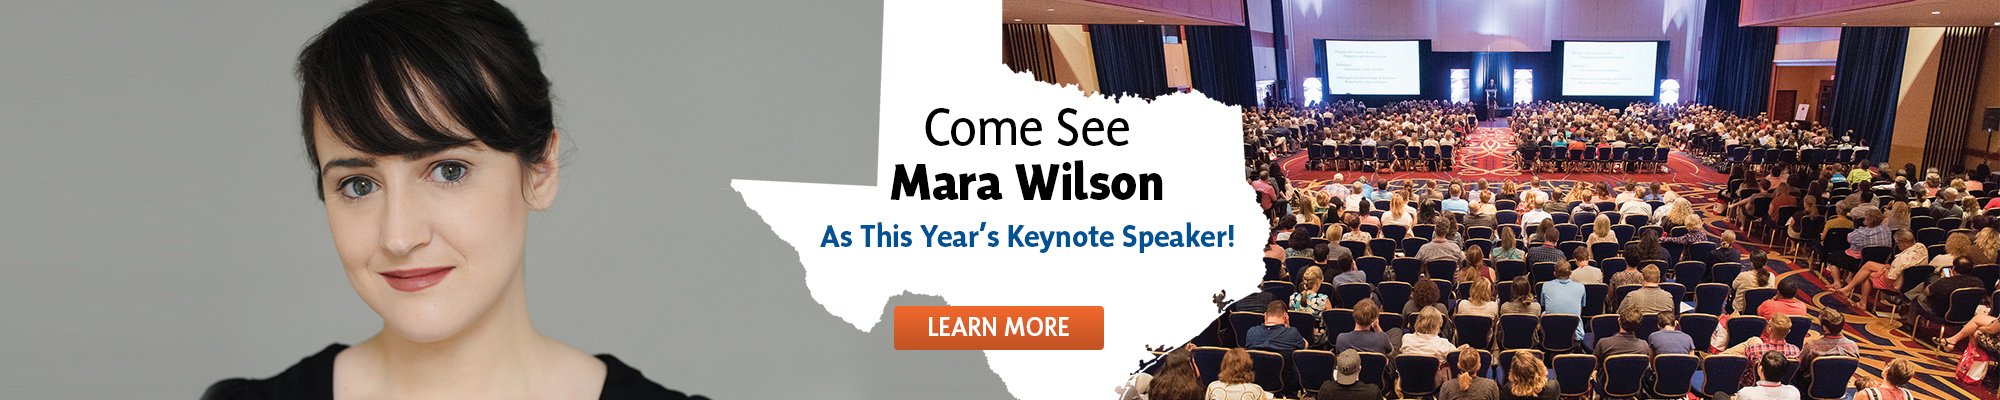 Come See Mara Wilson at this year's Keynote!